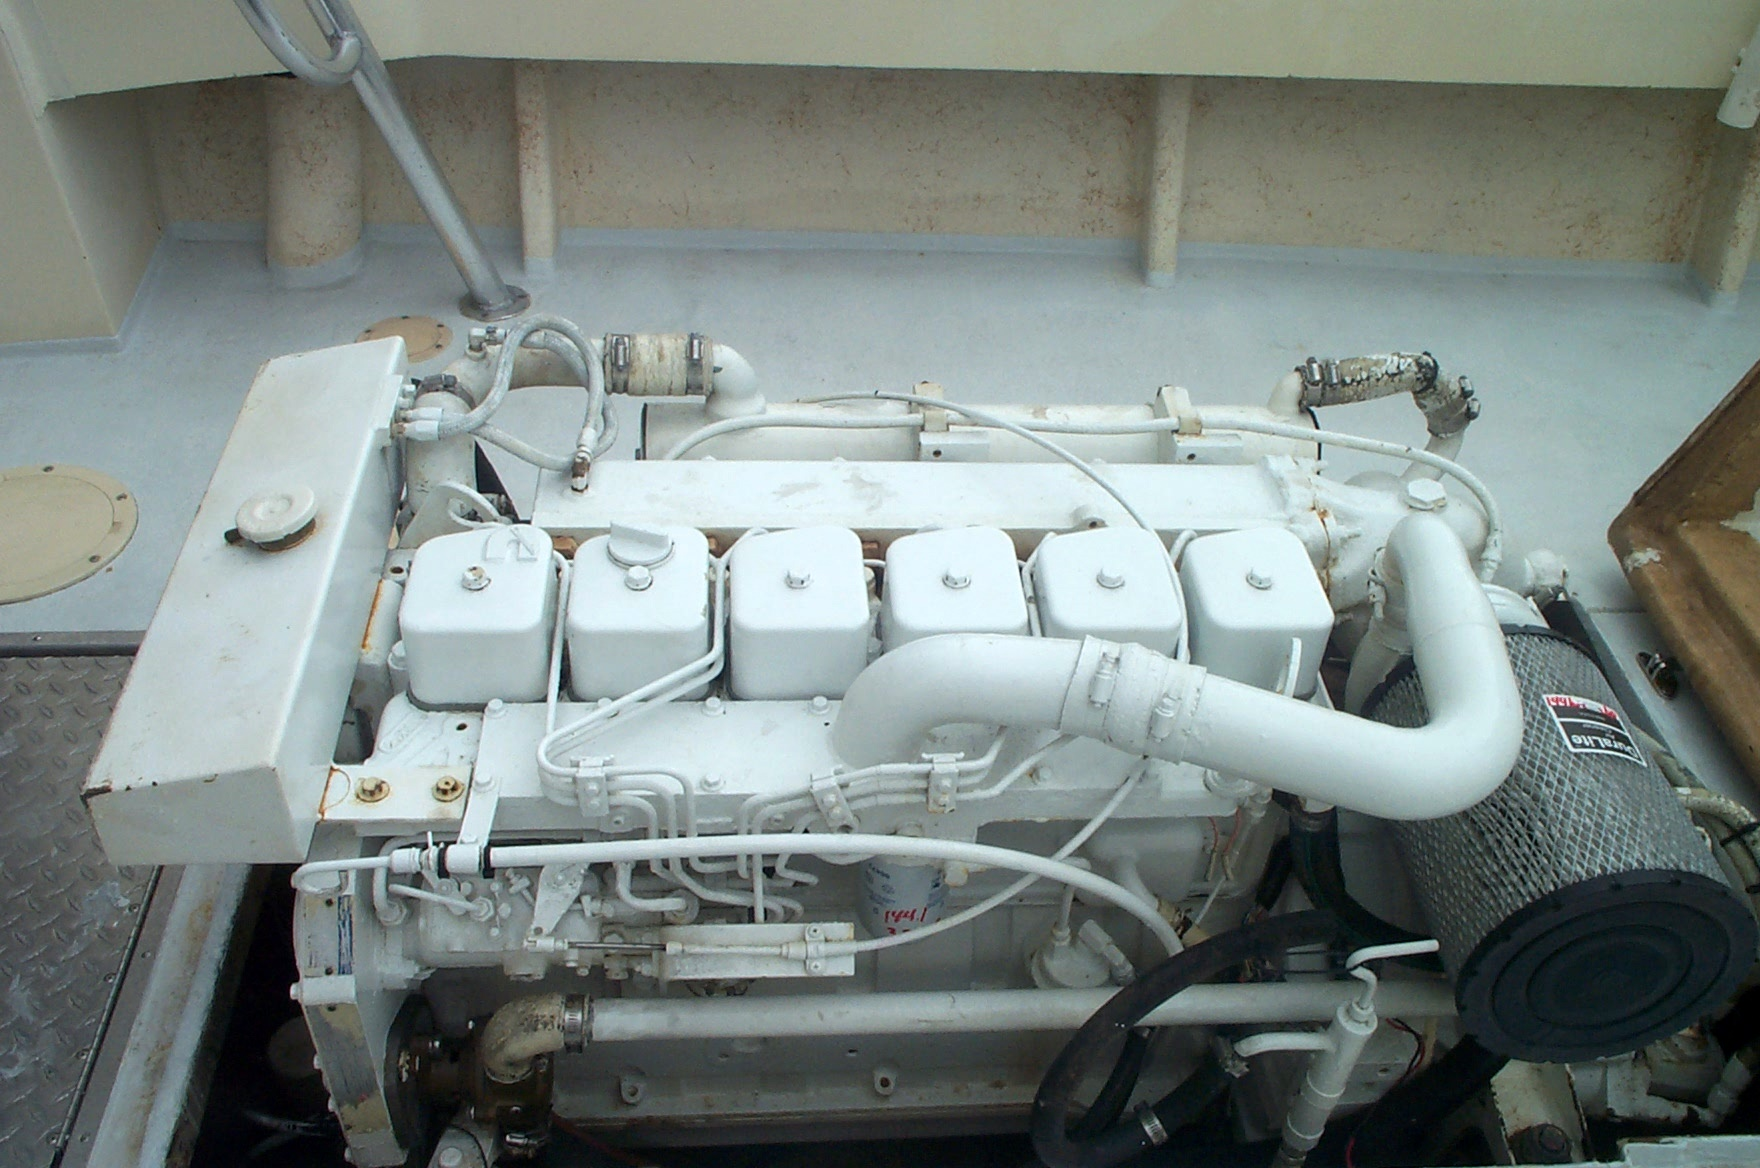 25' Kencraft Buxton Pilot House/Cummins Diesel/Tuna Tower w/ Controls-picture-003-jpg